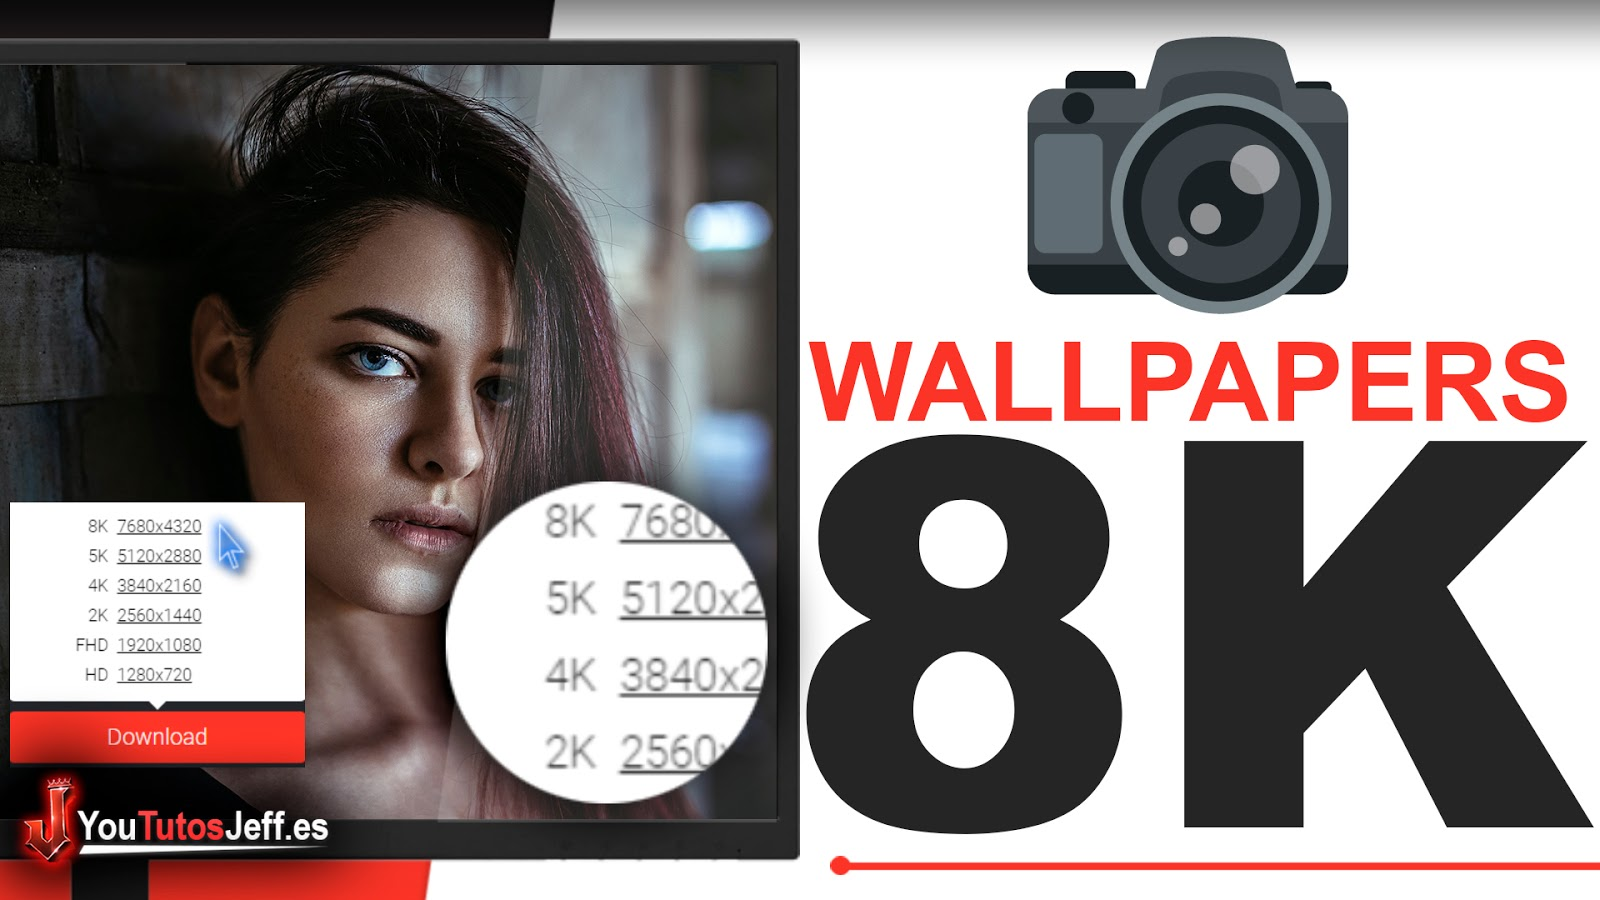 Descargar Wallpapers 4K y 8K - Excelente Pagina de Wallpapers